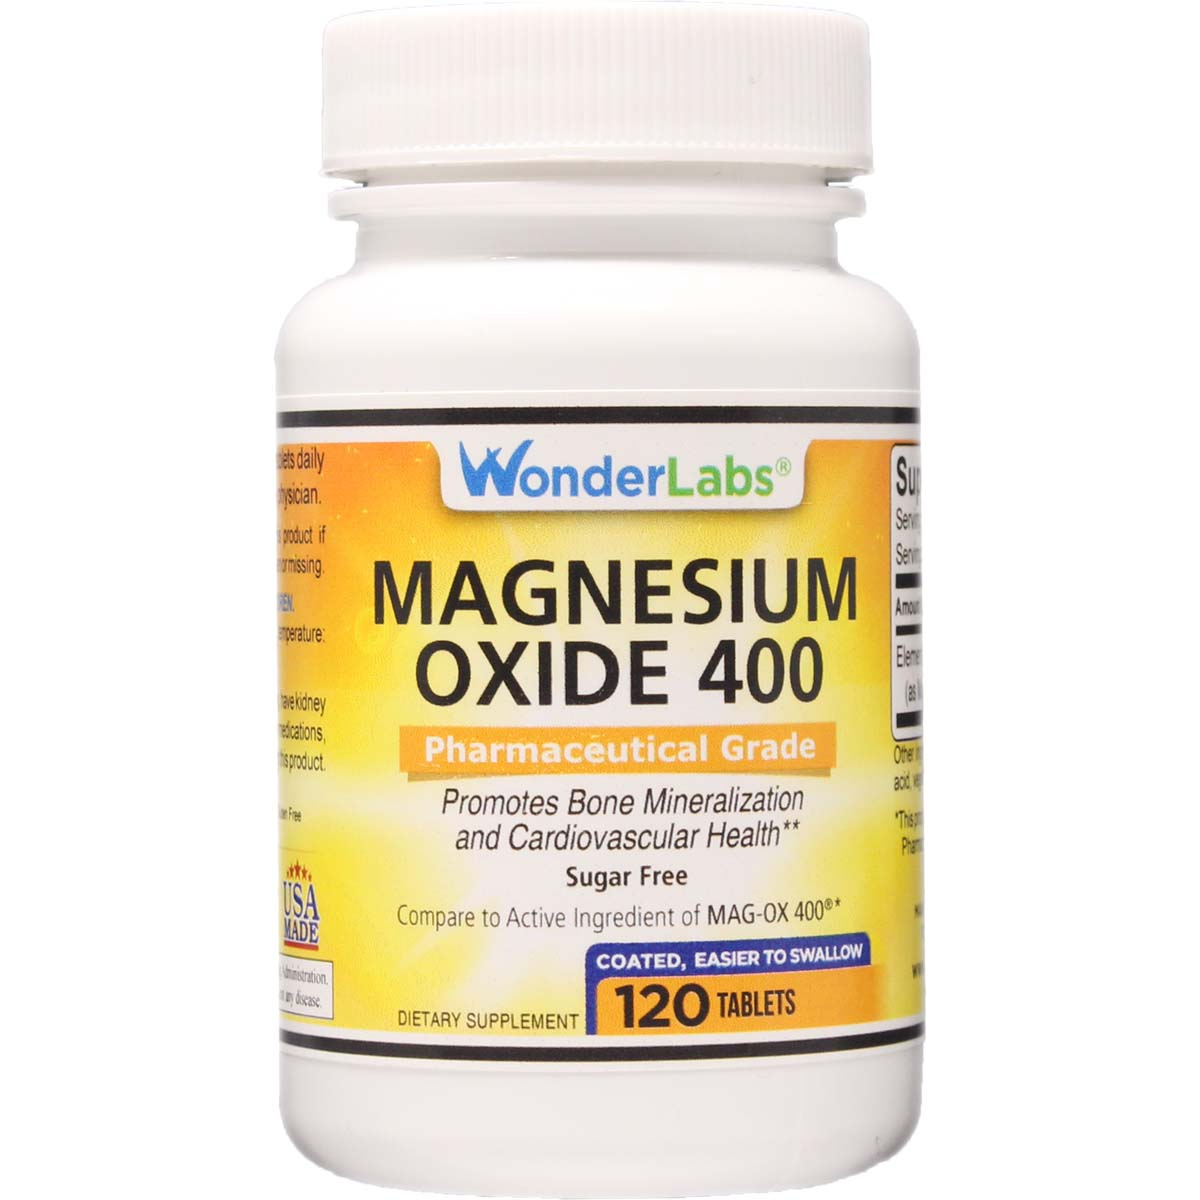 Magnesium Oxide 400 Mg Tab : Magnesium oxide compare to mag ox tablets item